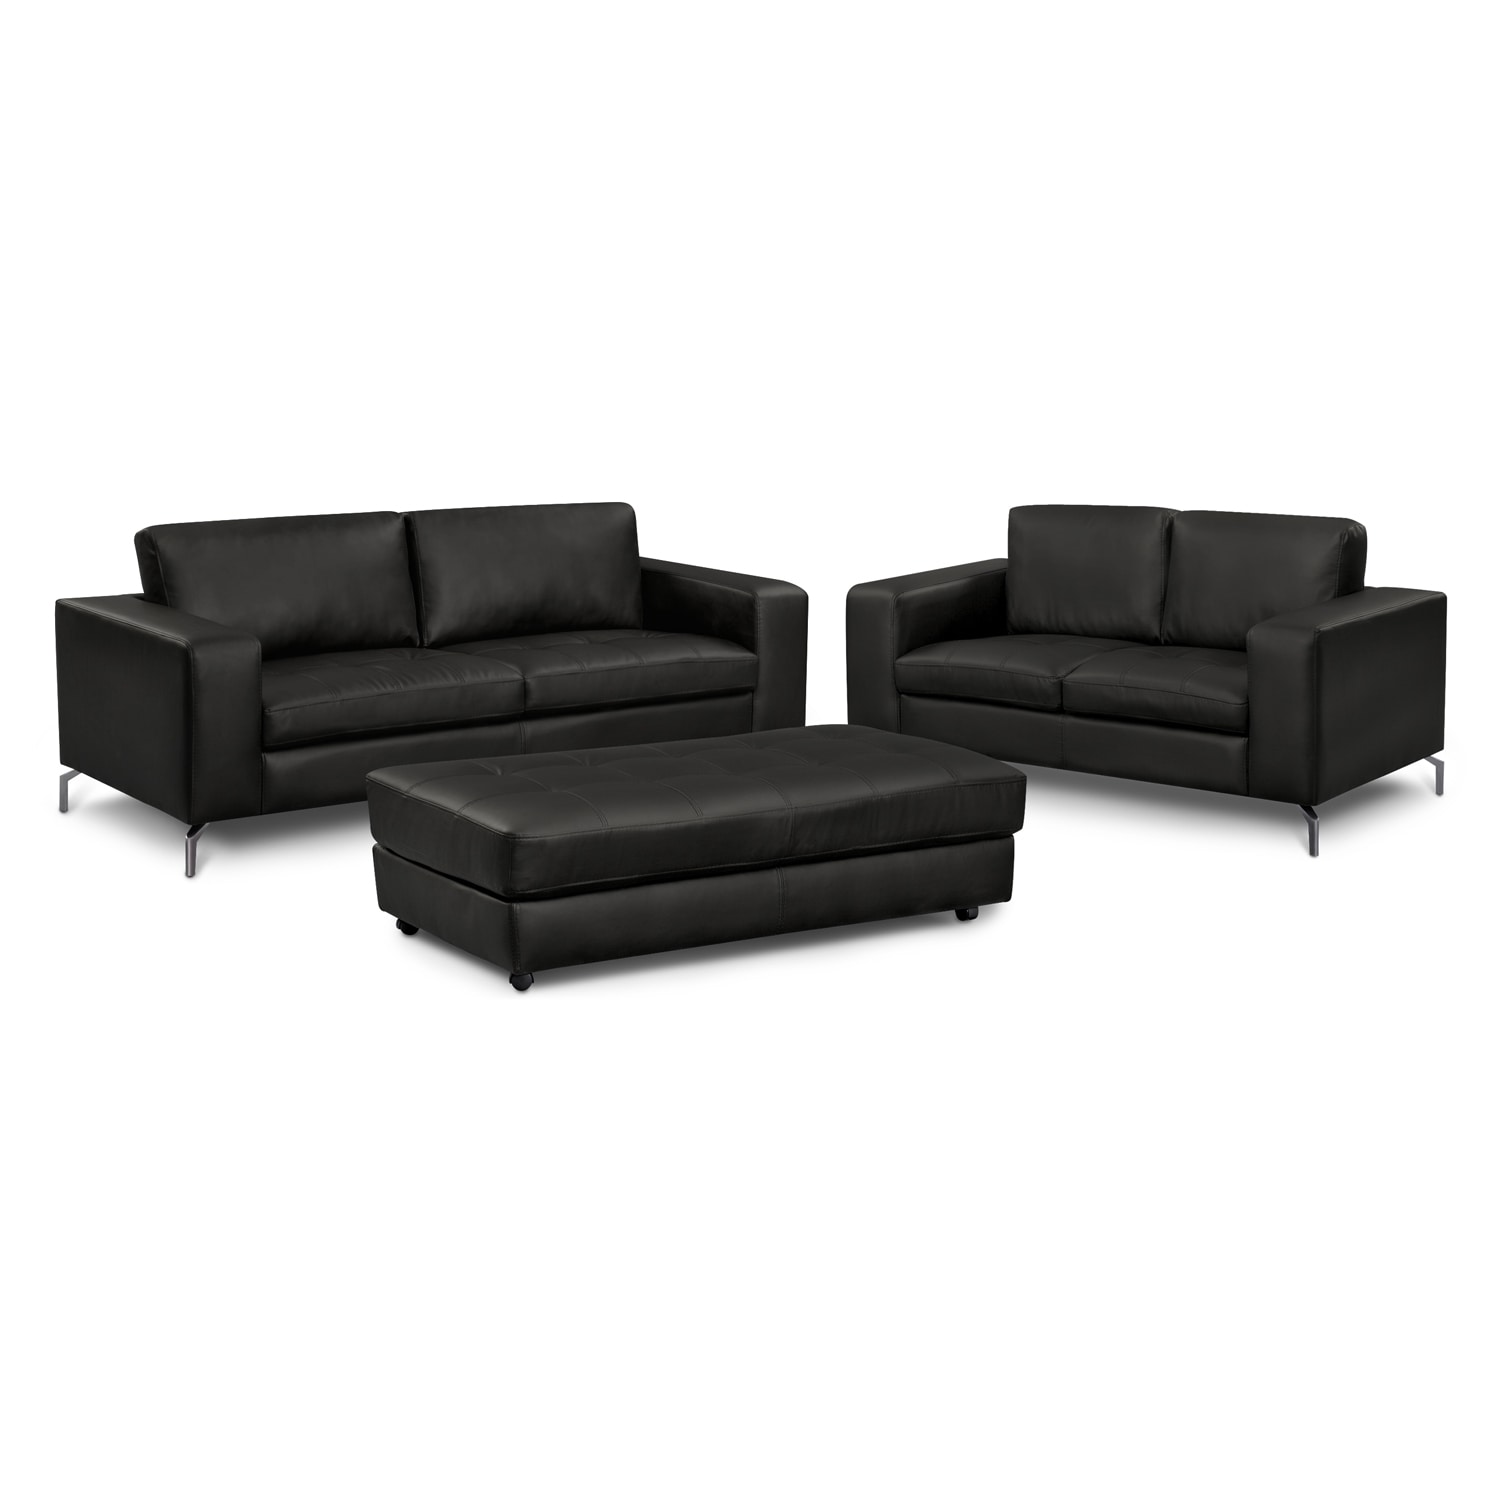 Living Room Furniture - Casino II 3 Pc. Living Room w/Cocktail Ottoman